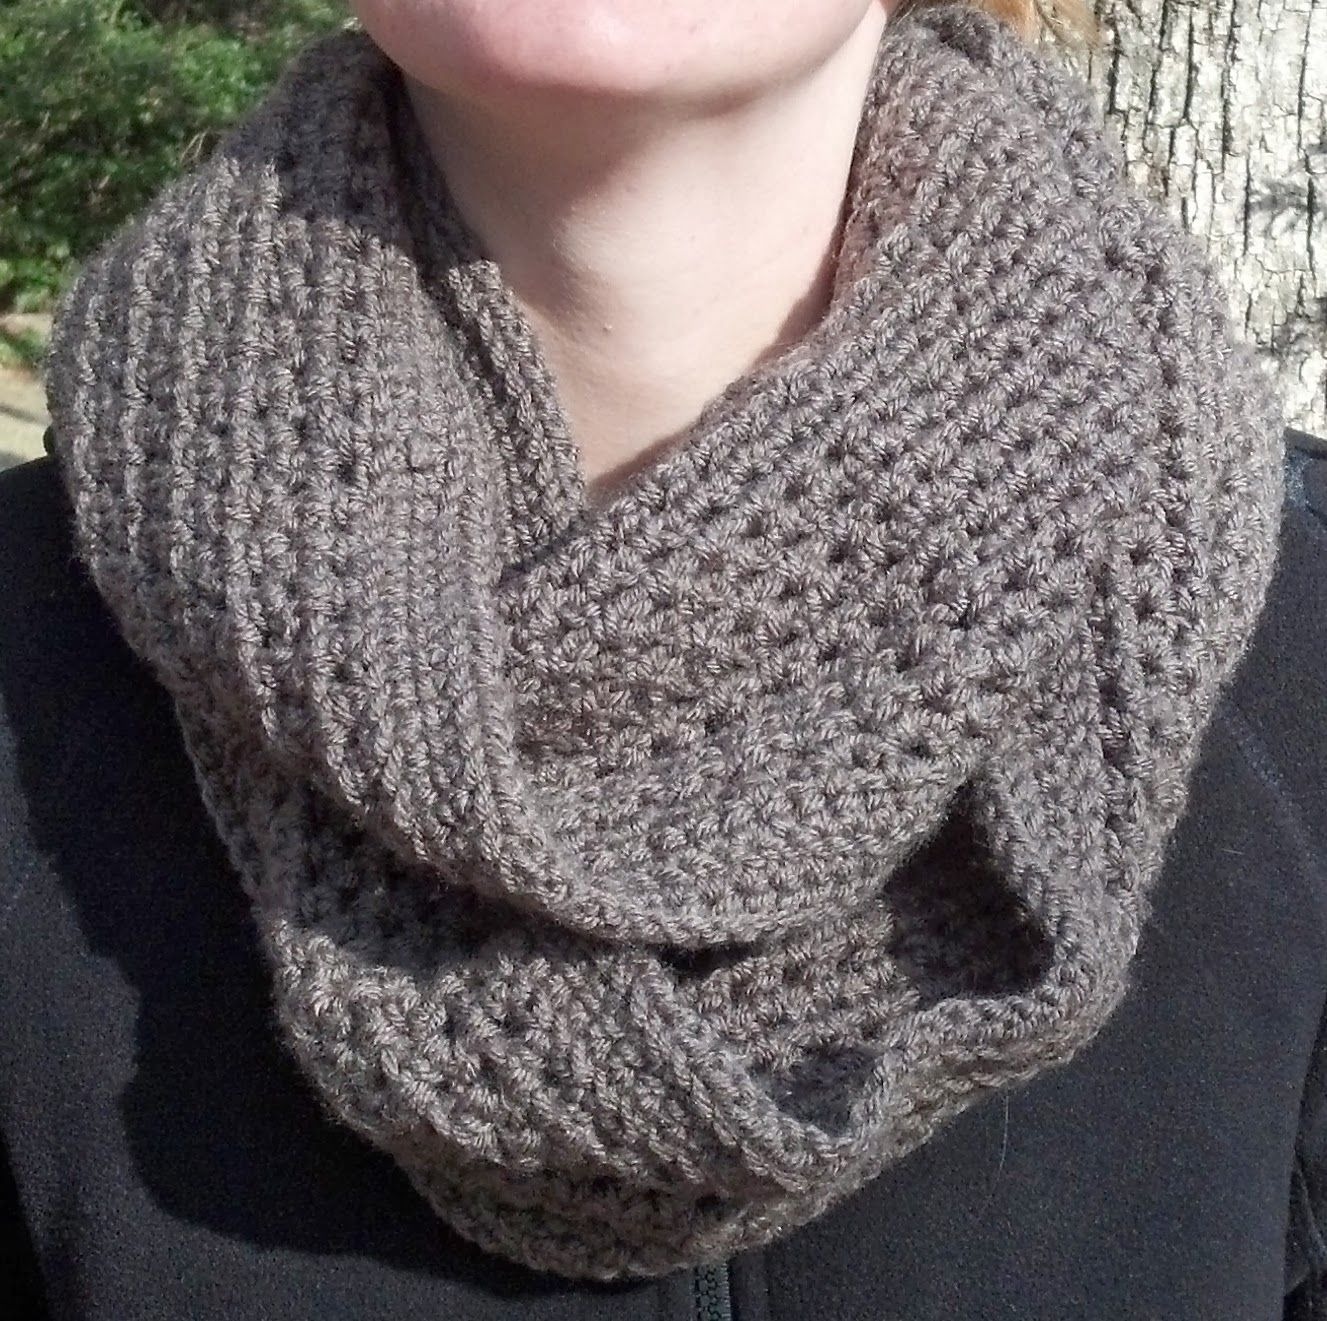 Free pattern honeycomb infinity scarf knit a bit crochet away free pattern honeycomb infinity scarf knit a bit crochet away bankloansurffo Choice Image